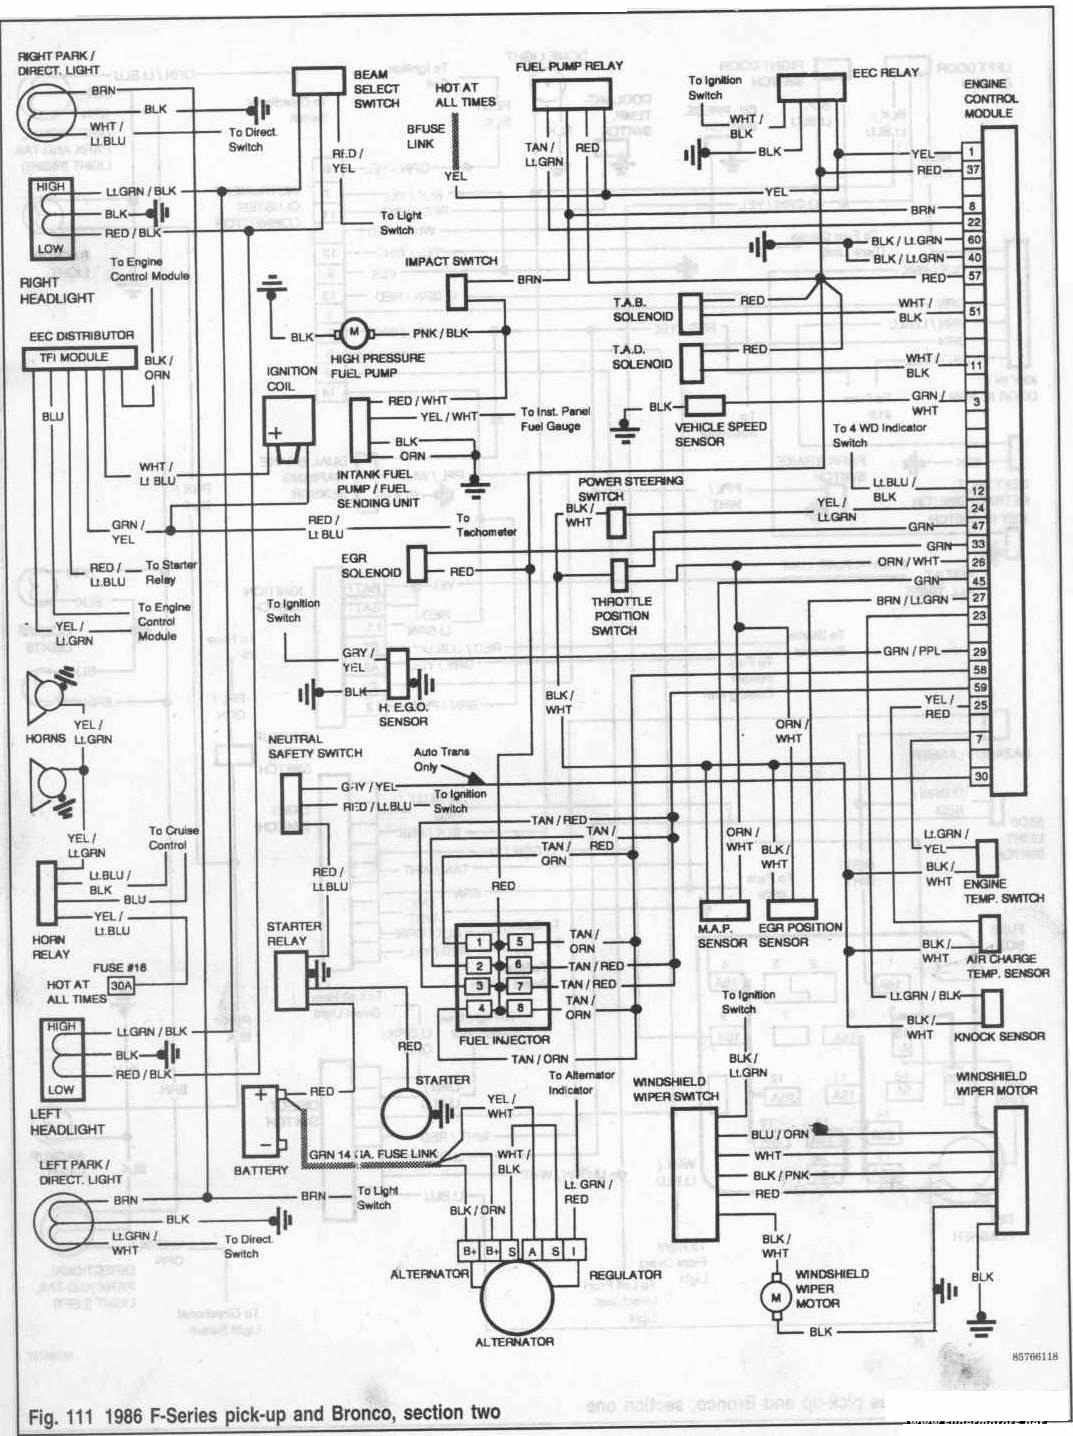 hight resolution of 1986 ford f150 wiring diagram wiring diagram todays 2003 ford f350 wiring diagram 1986 f350 wiring diagram